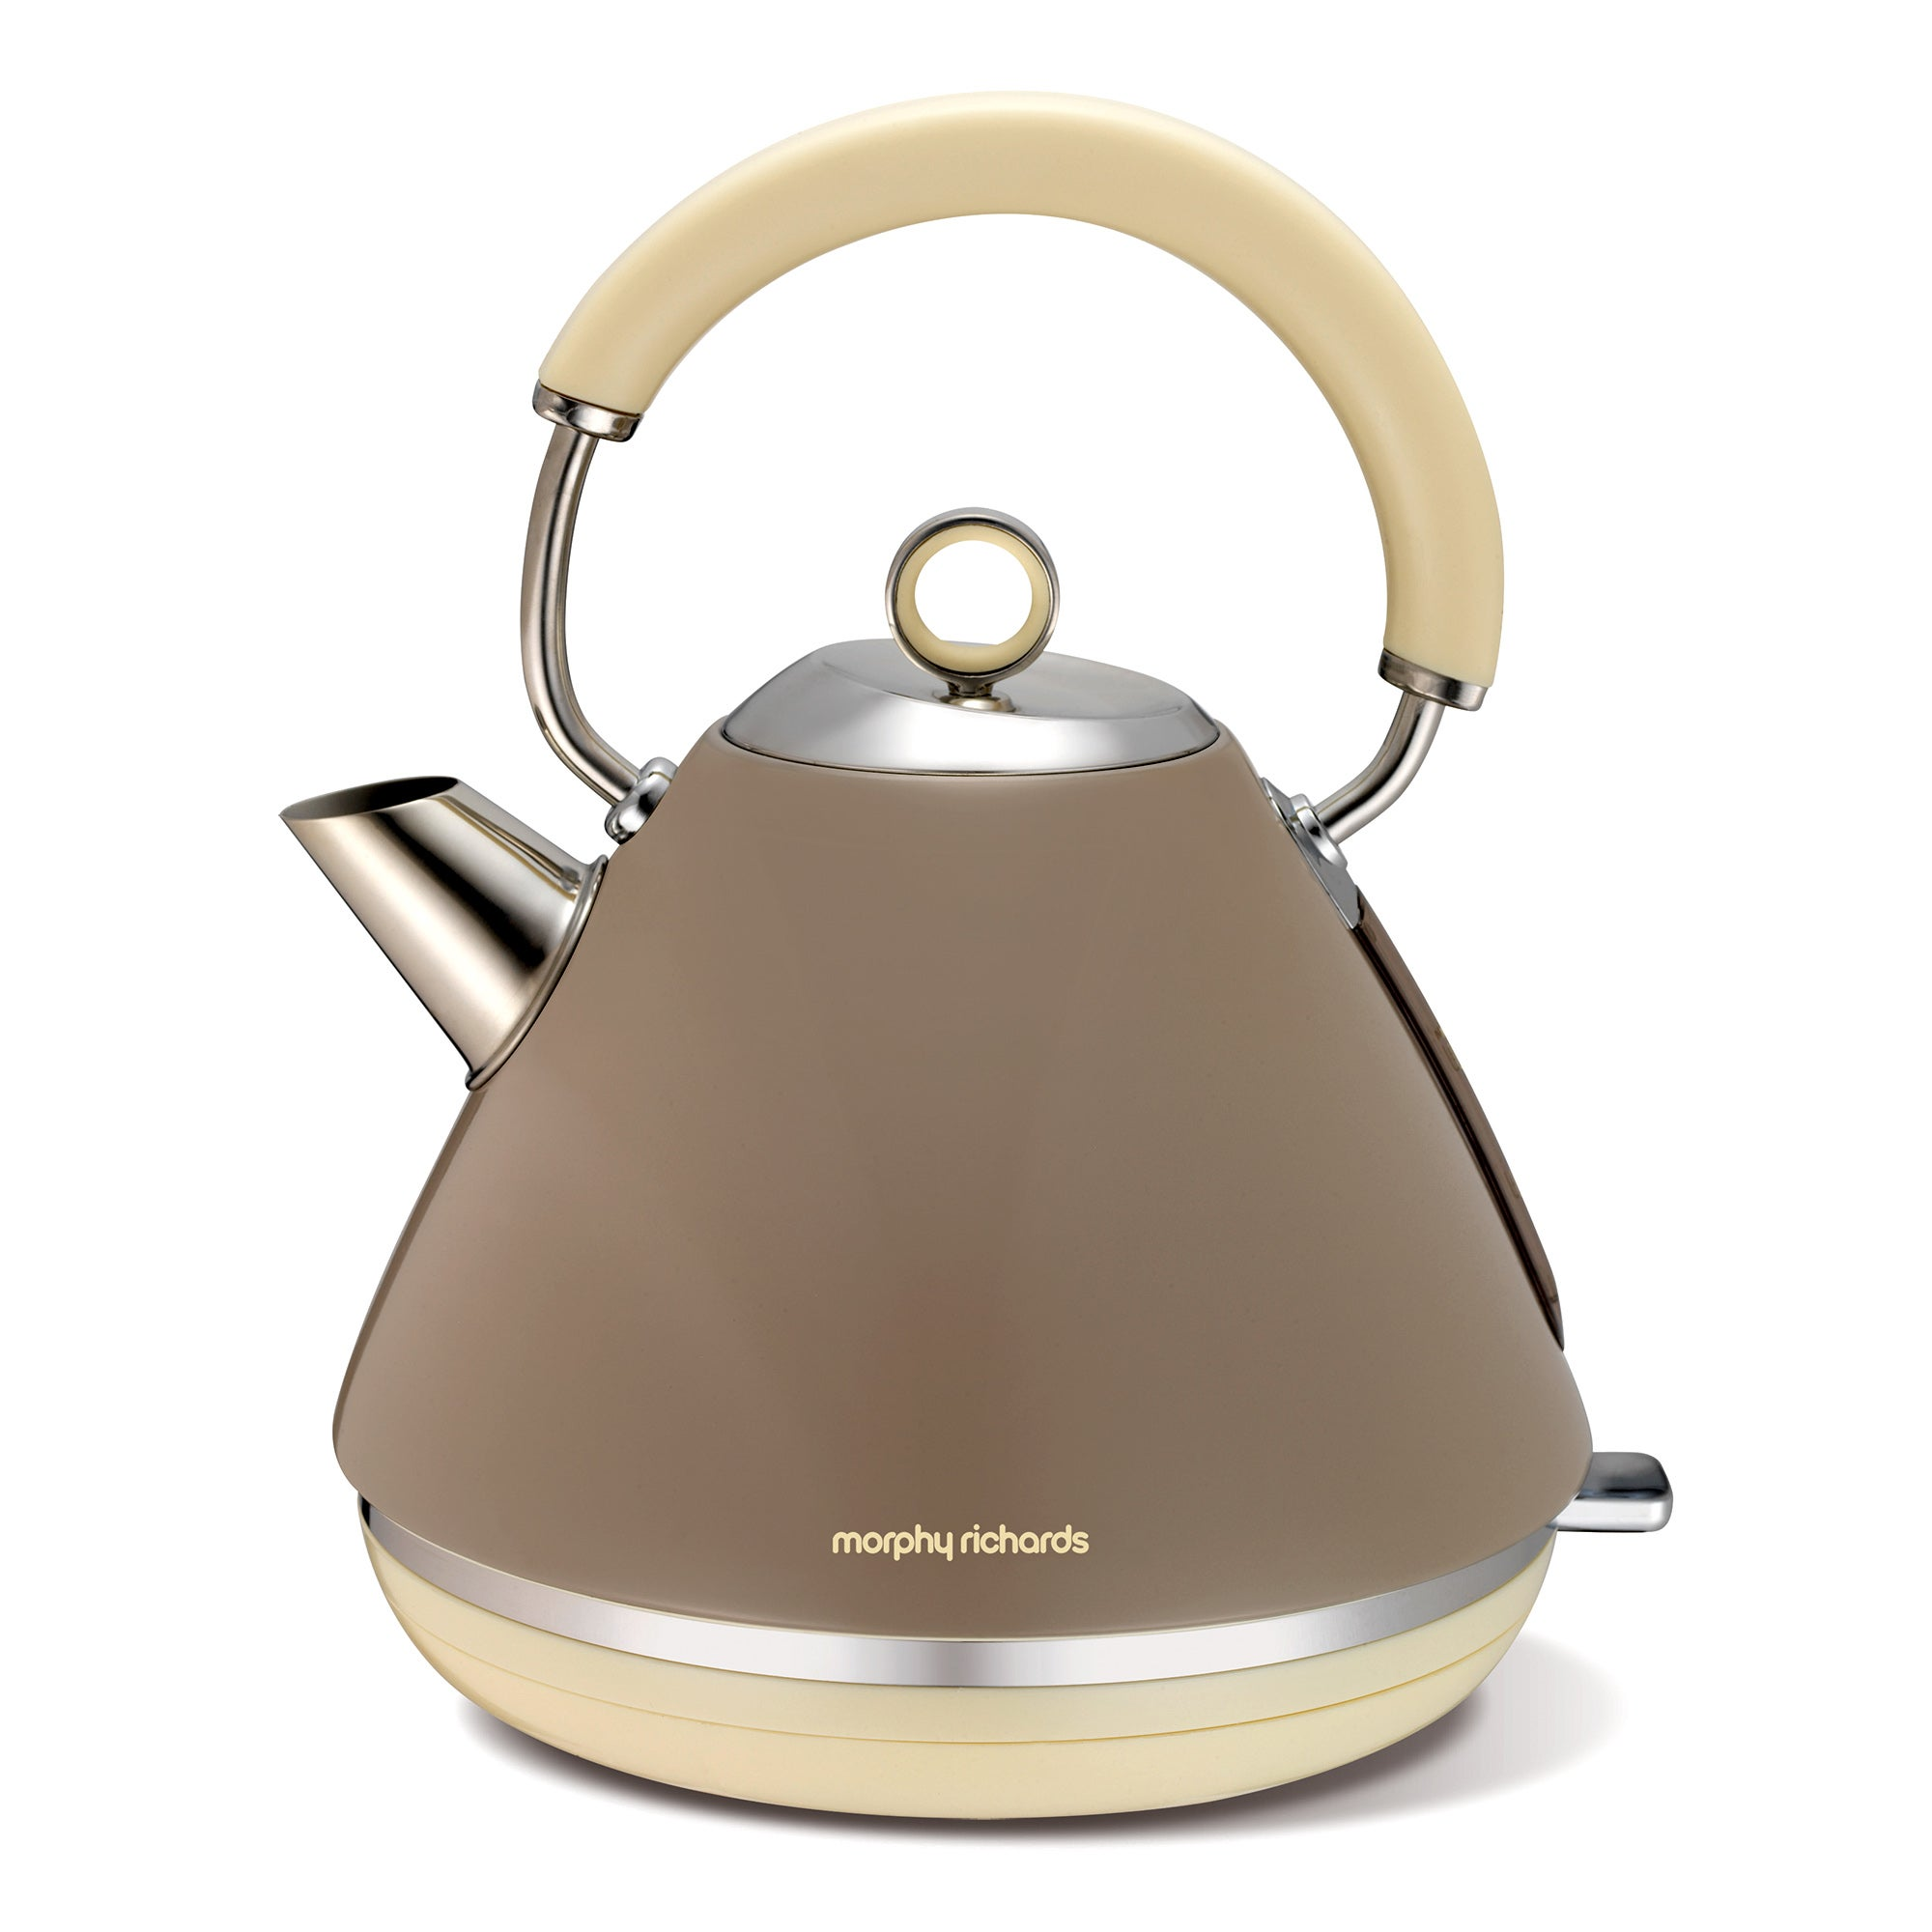 Morphy Richards Accents 102012 Barley Traditional Kettle